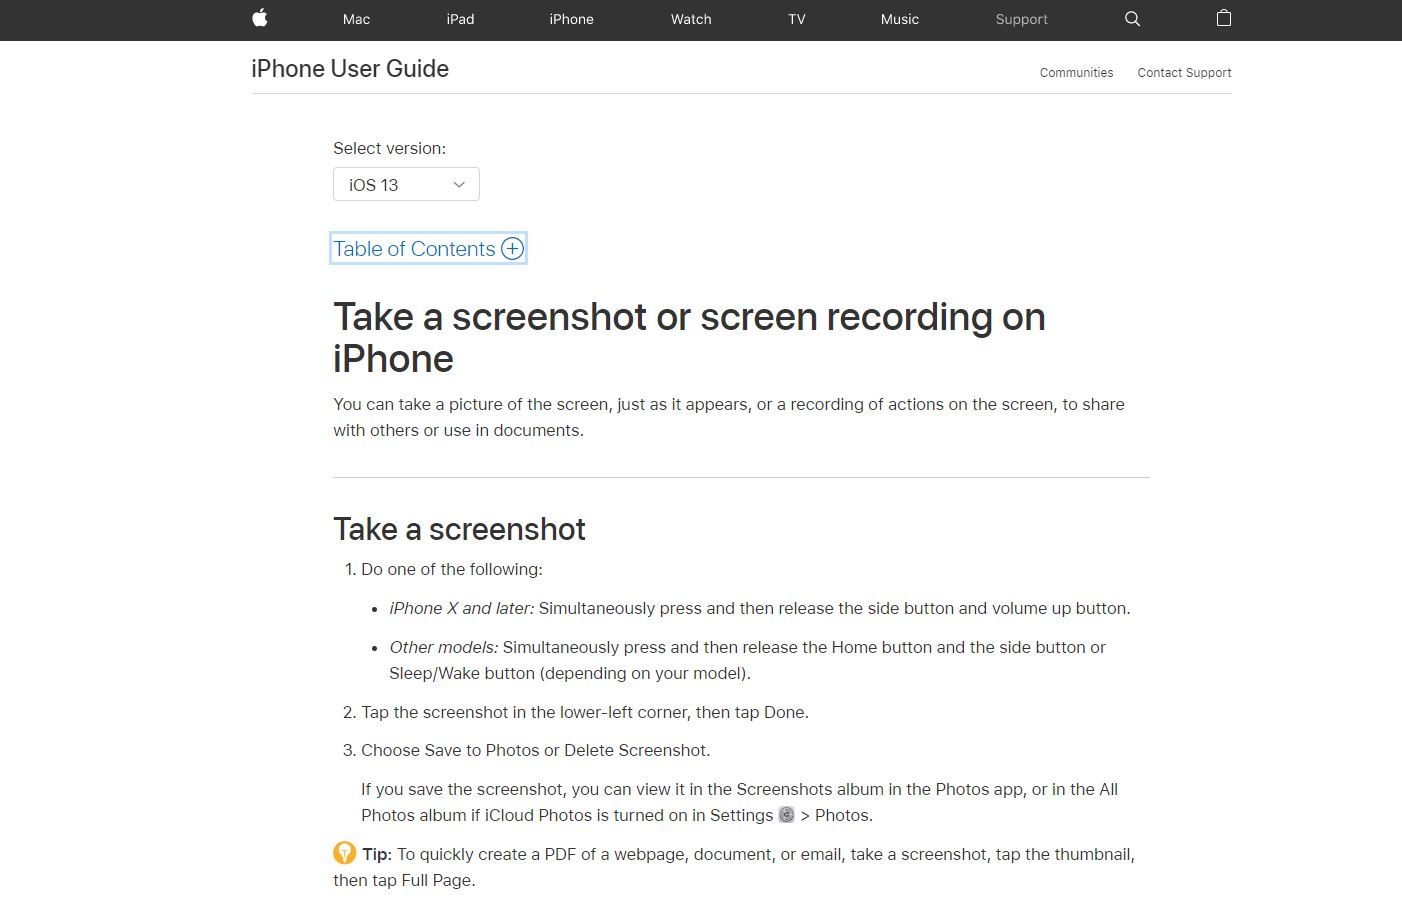 Apple help guide example